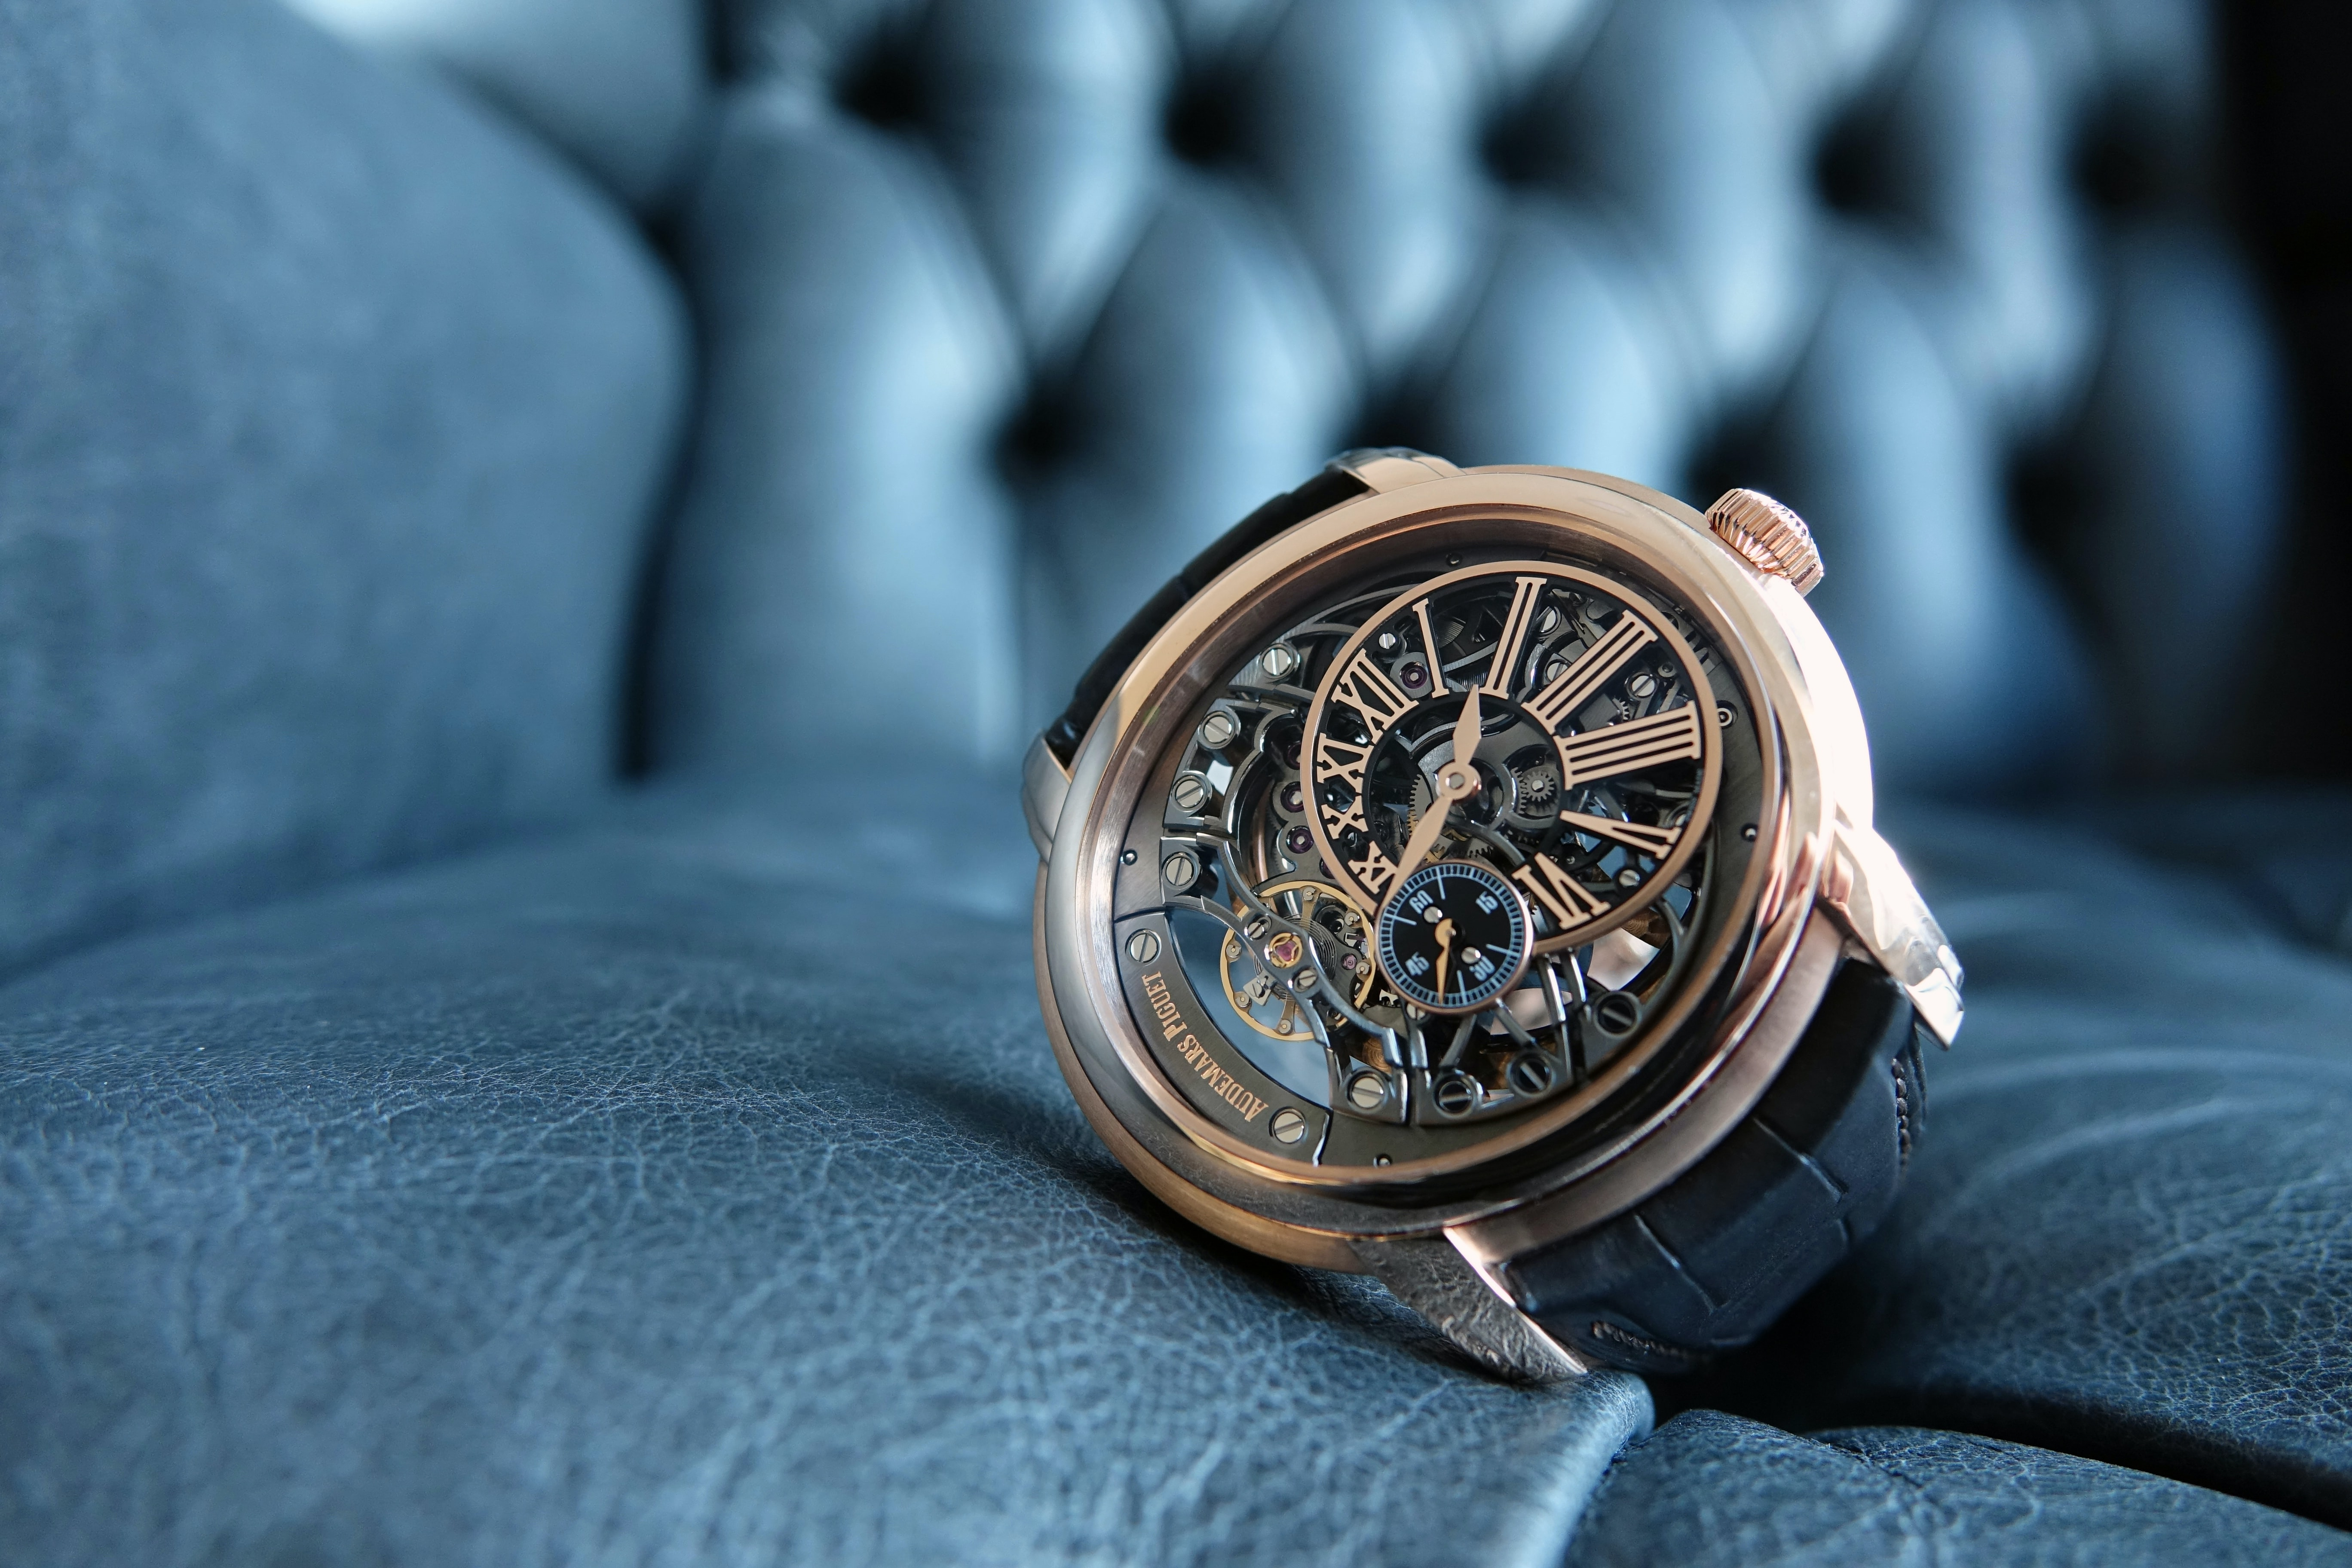 Millenary Openworked Hands-On: The Audemars Piguet Millenary Openworked, A Spectacular Design Counterpoint To The Royal Oak Hands-On: The Audemars Piguet Millenary Openworked, A Spectacular Design Counterpoint To The Royal Oak Audemars Piguet Millenary Openworked Front